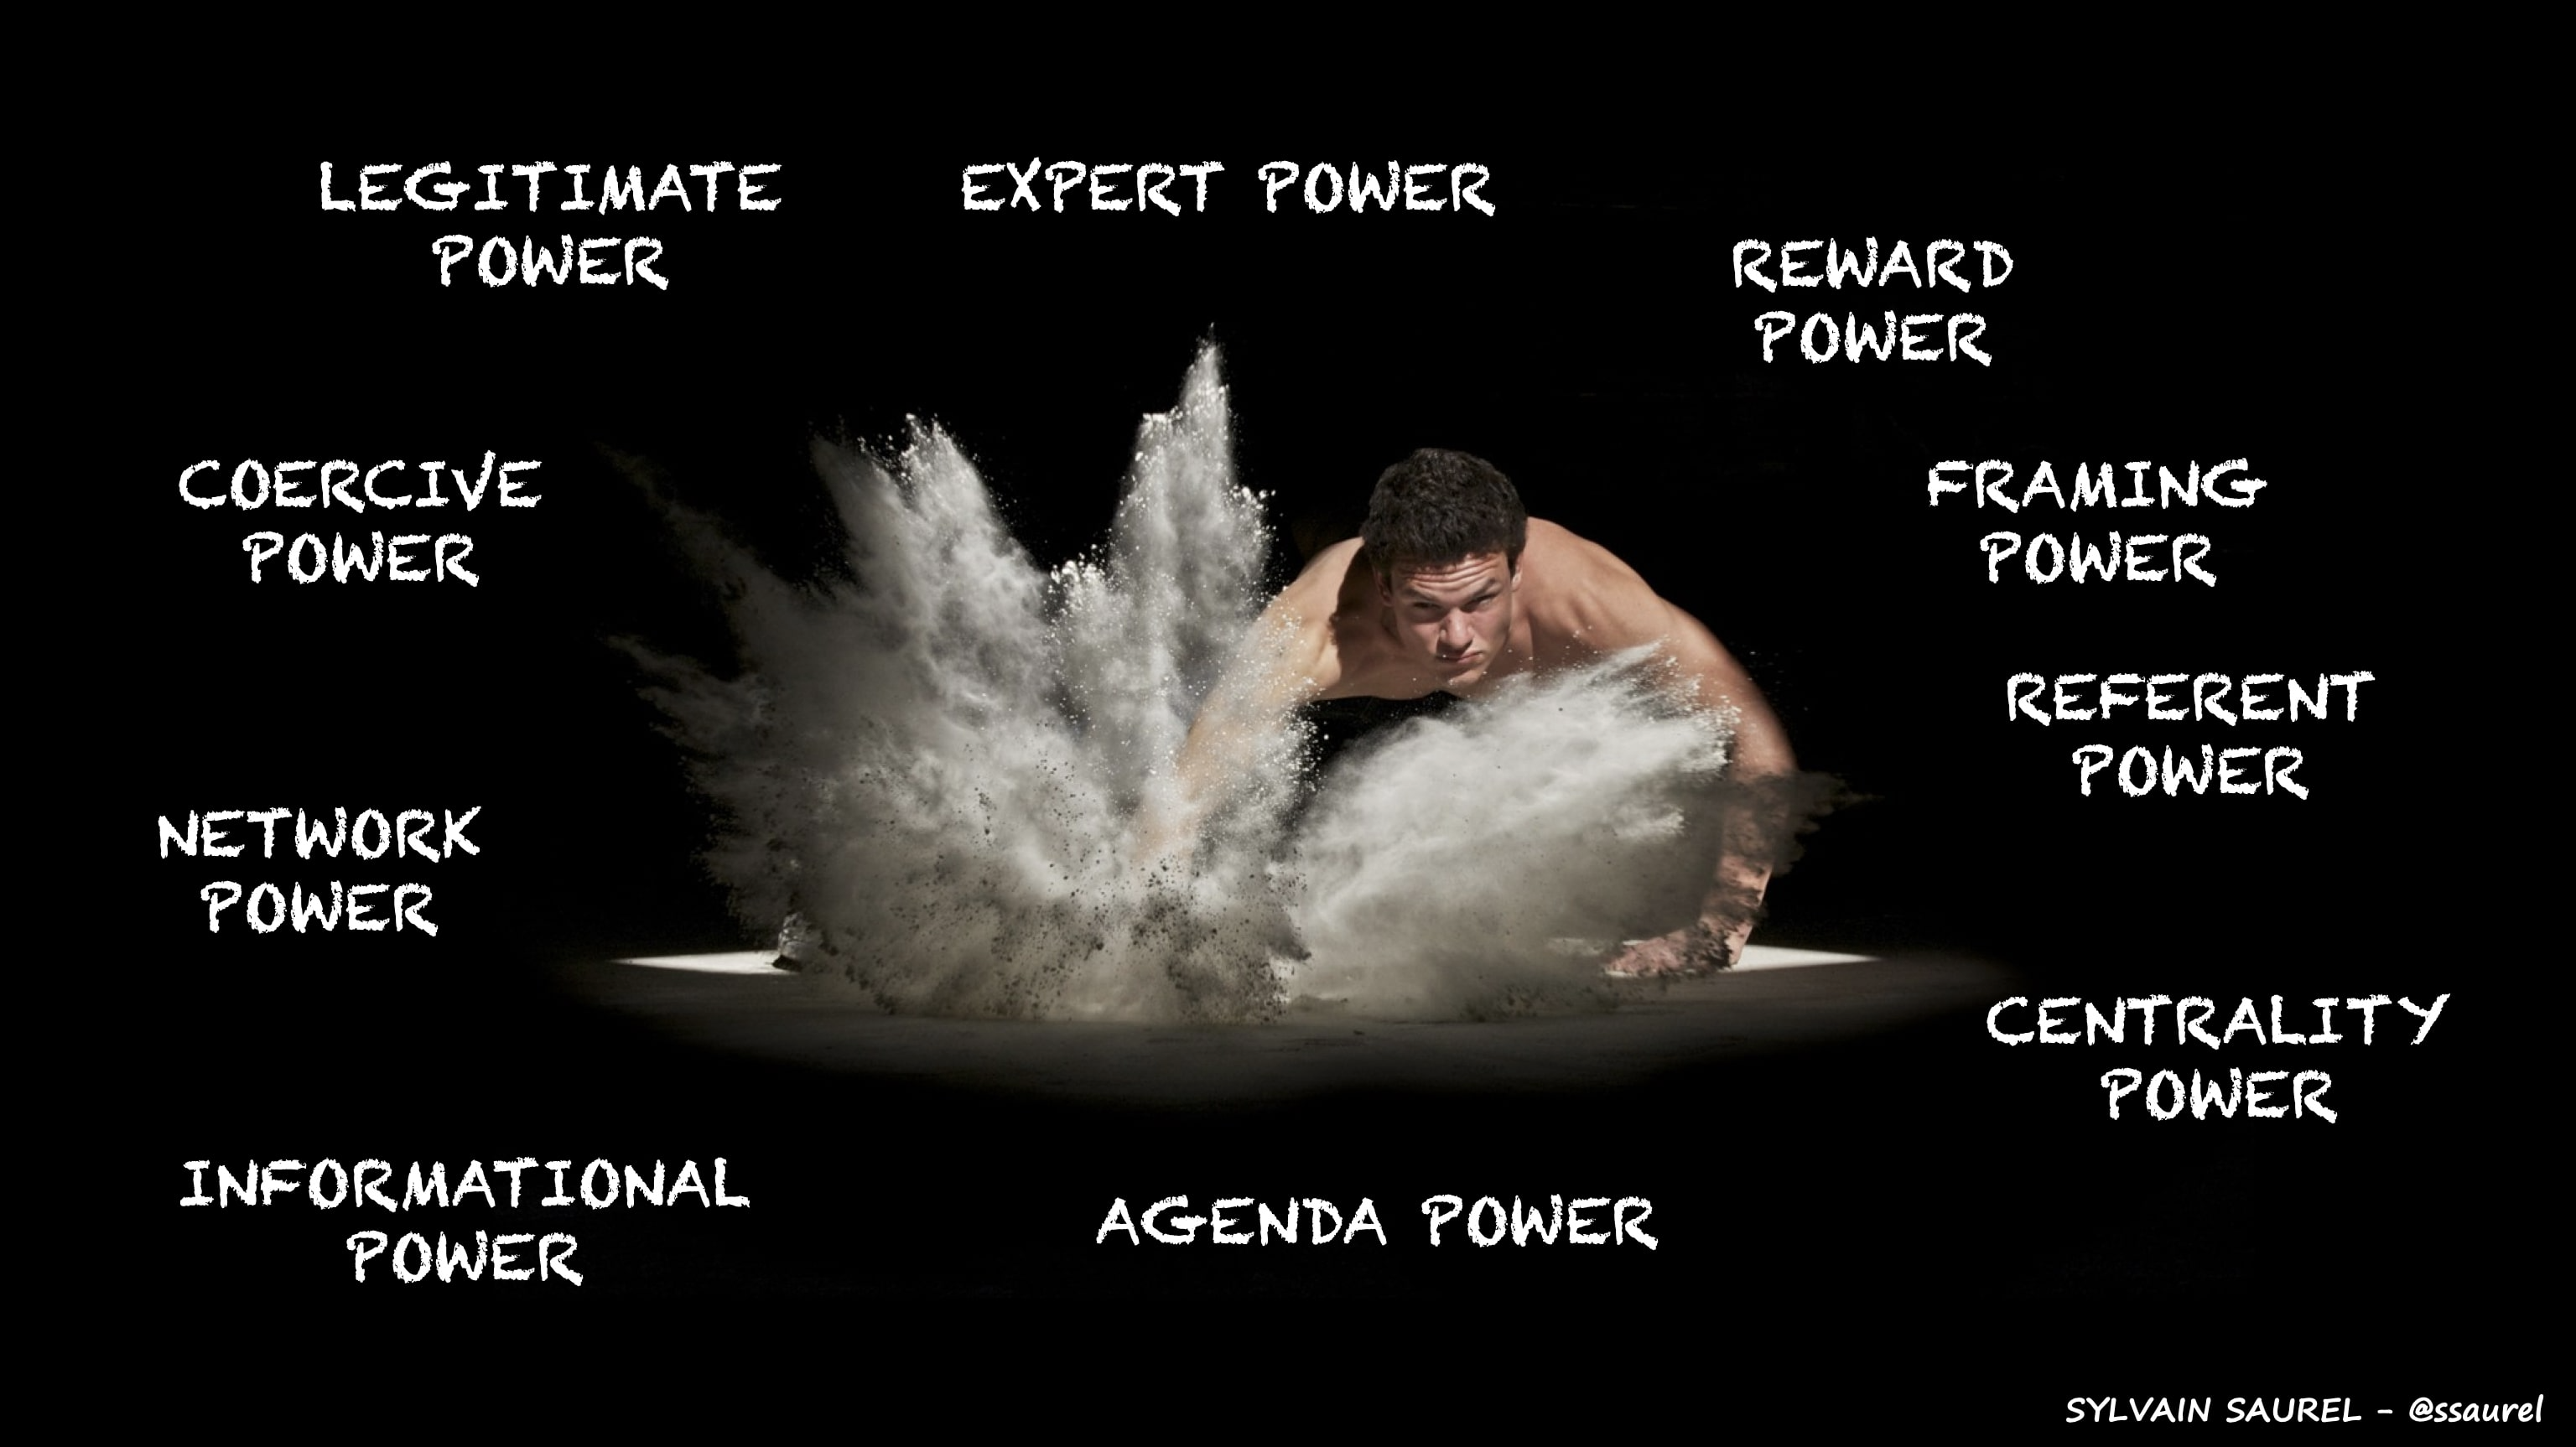 [Image] Here Are the 10 Sources of Power.